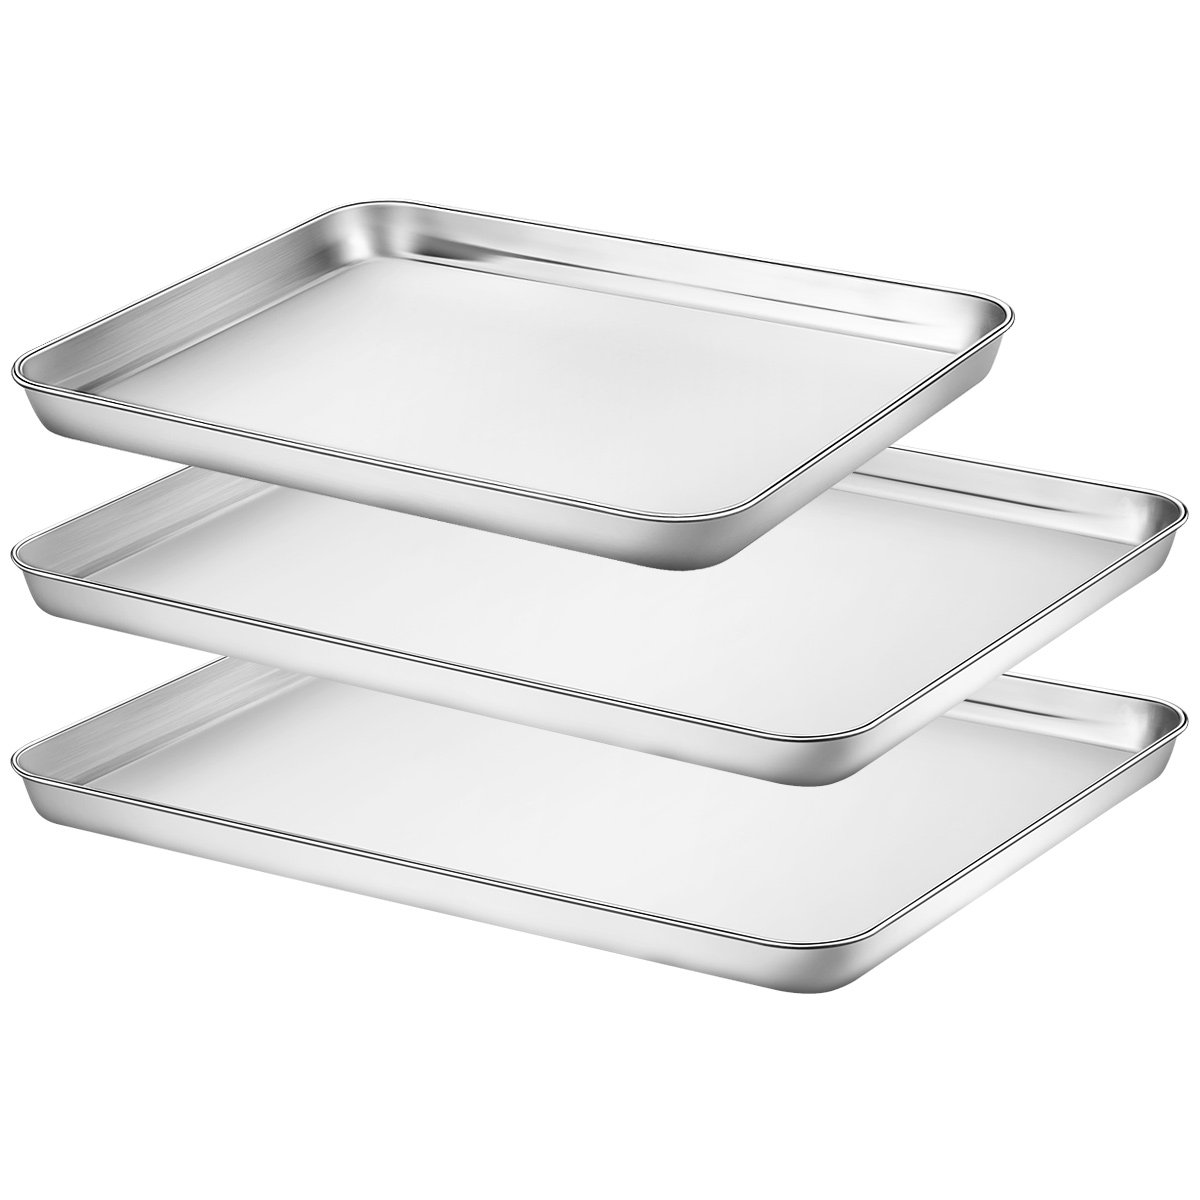 Baking Sheets Set of 3, HKJ Chef Baking Pans 3 Pieces & Stainless Steel Cookie Sheets & Toaster Oven Tray Pans, Non Toxic & Healthy, Mirror & Easy Clean